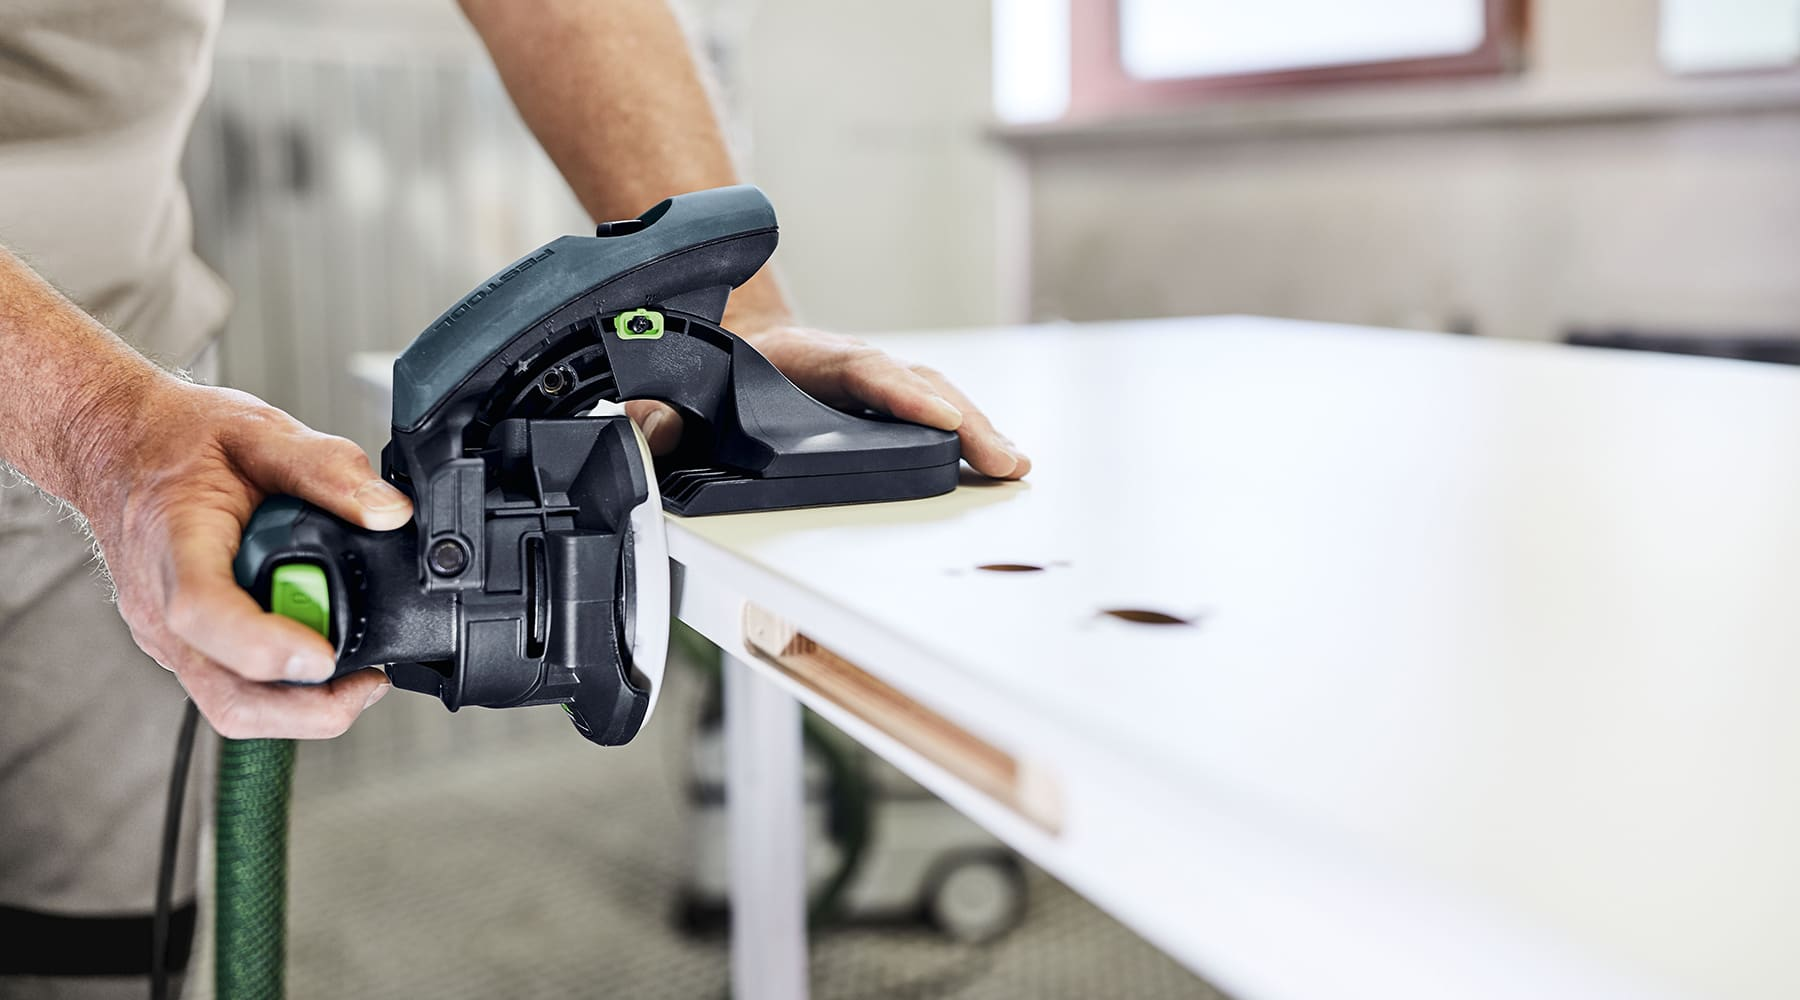 A man using Festool sander, available at JC Licht in Chicago, IL.